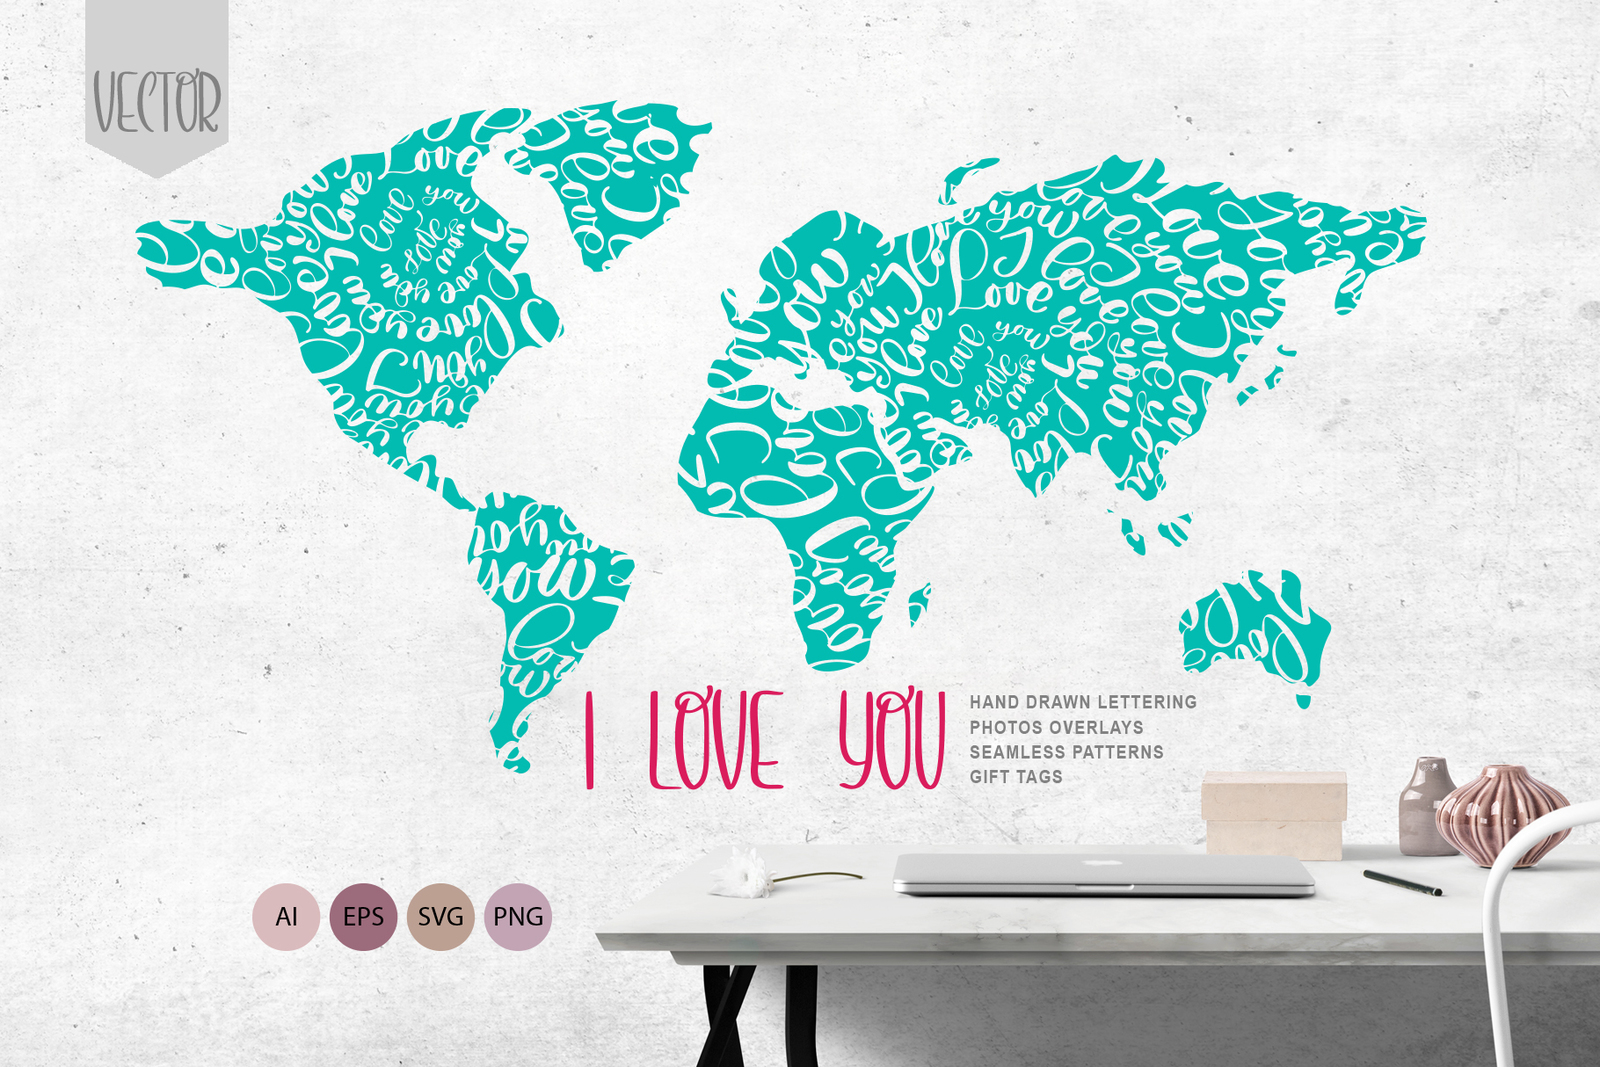 Valentines «I Love You» Vector Photo Overlay Collection